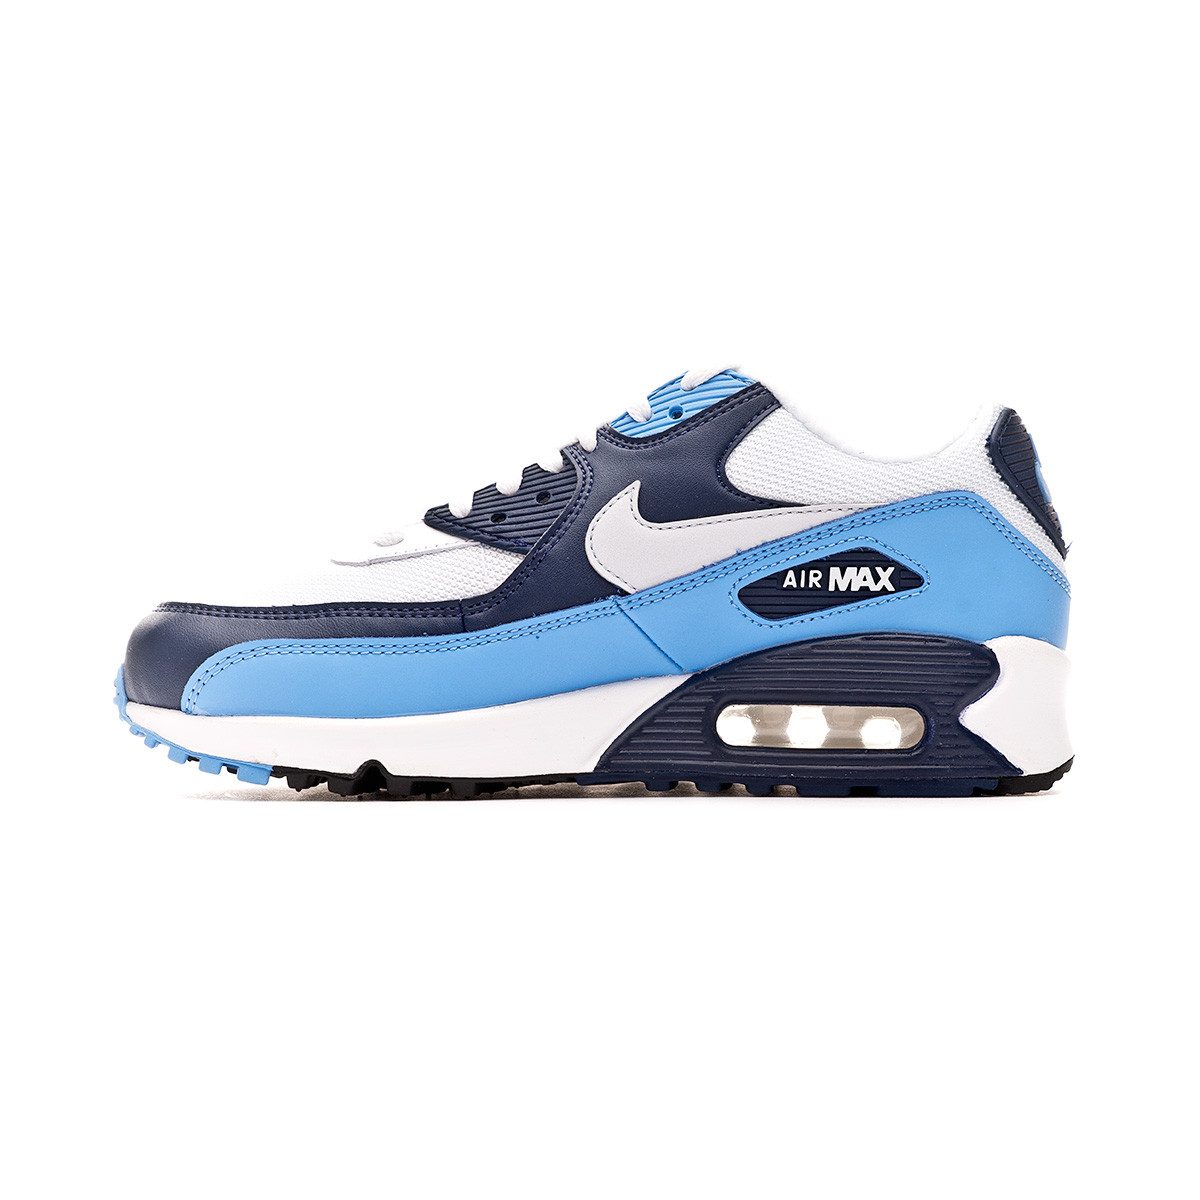 Baskets Nike Air Max '90 Essential Shoe